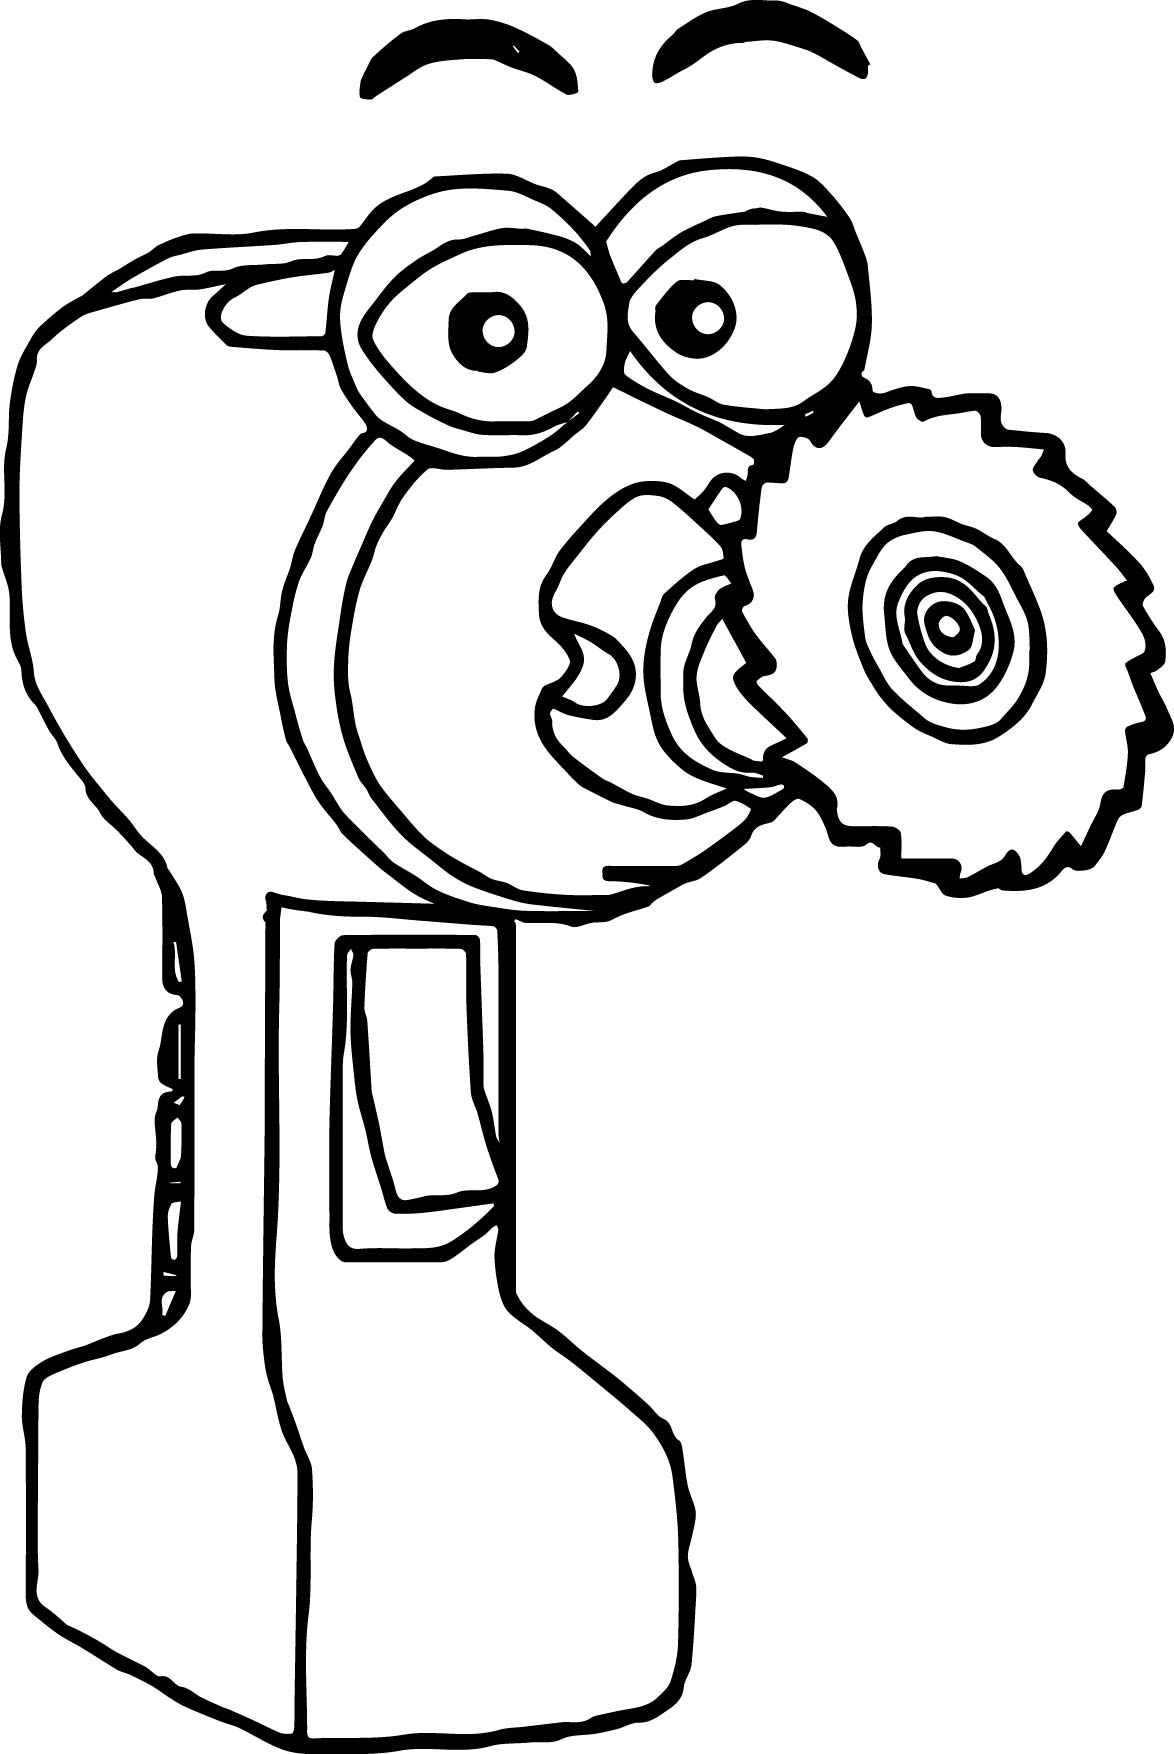 spinner handy manny coloring page - Handy Manny Colouring Pages